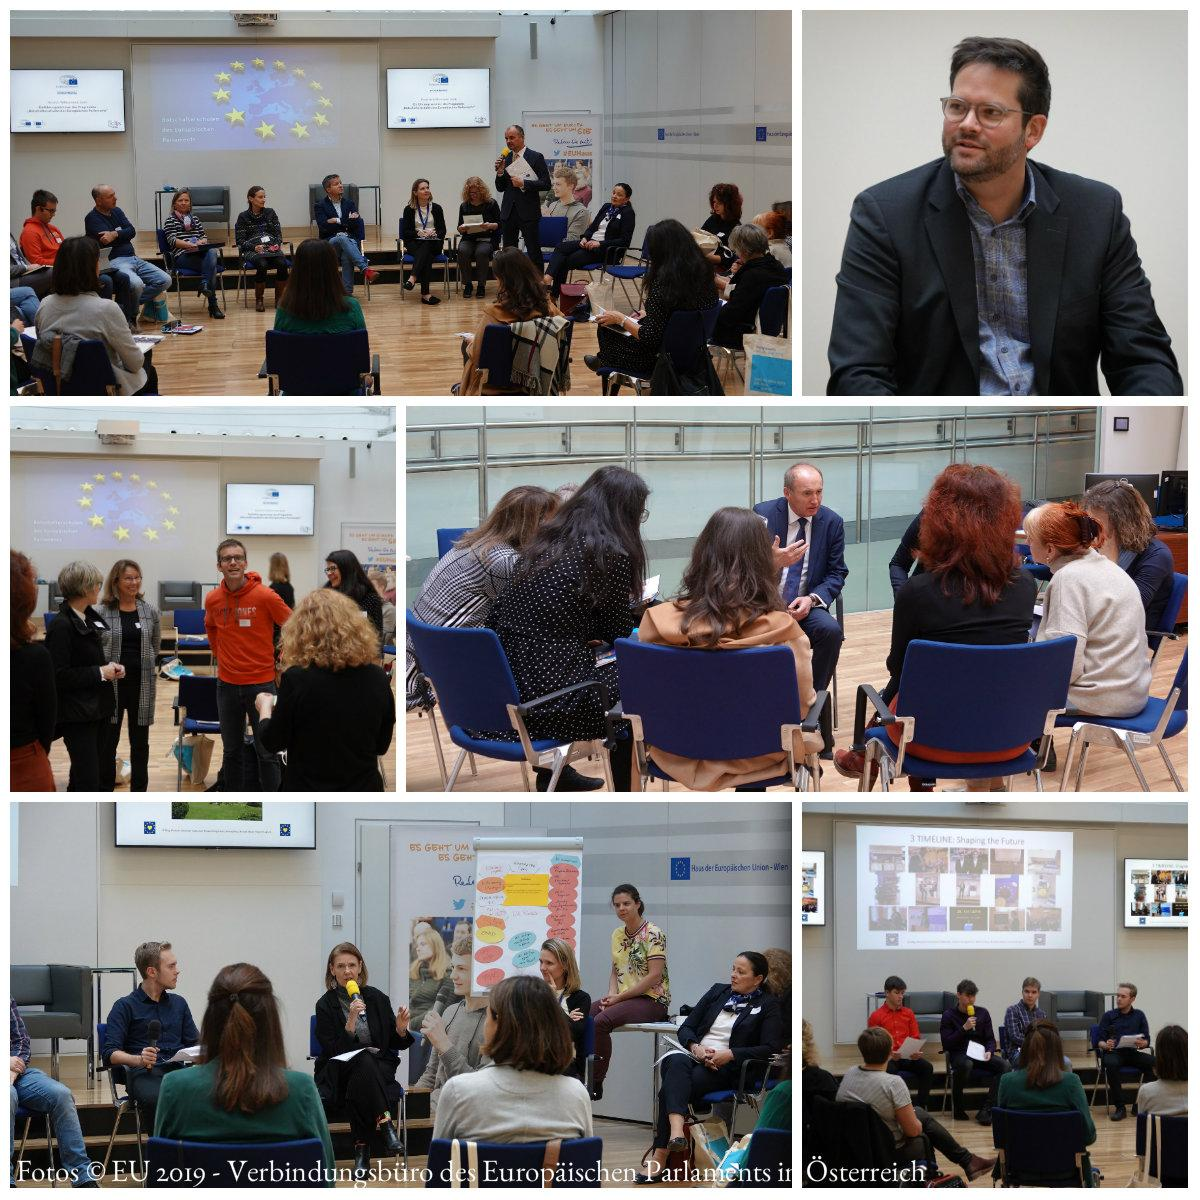 Collage: Einführungsseminar am 11. November 2019